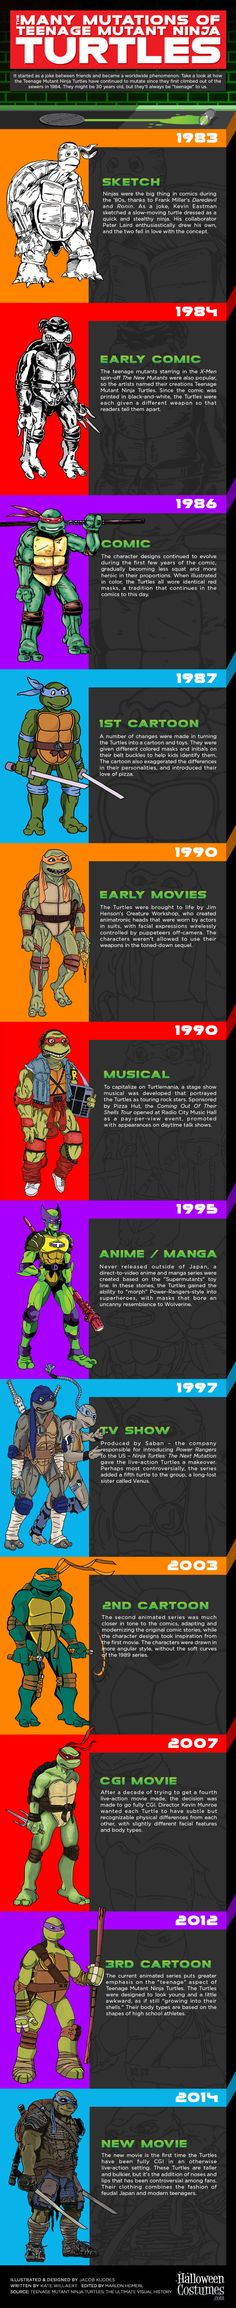 Every Teenage Mutant Ninja Turtles Costume In One #Infographic #tmnj